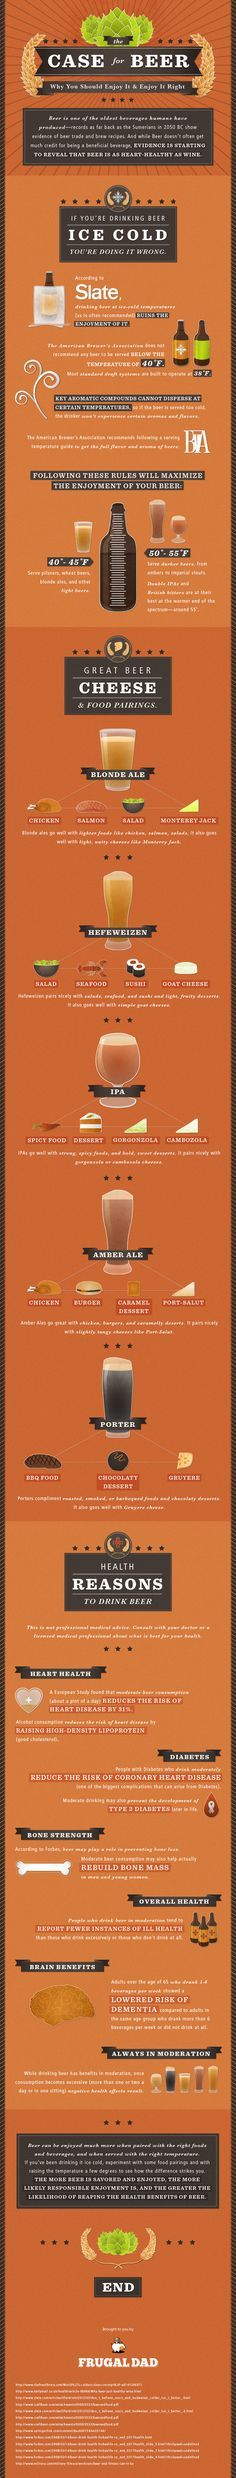 The Health Benefits of Drinking Beer, Infographic